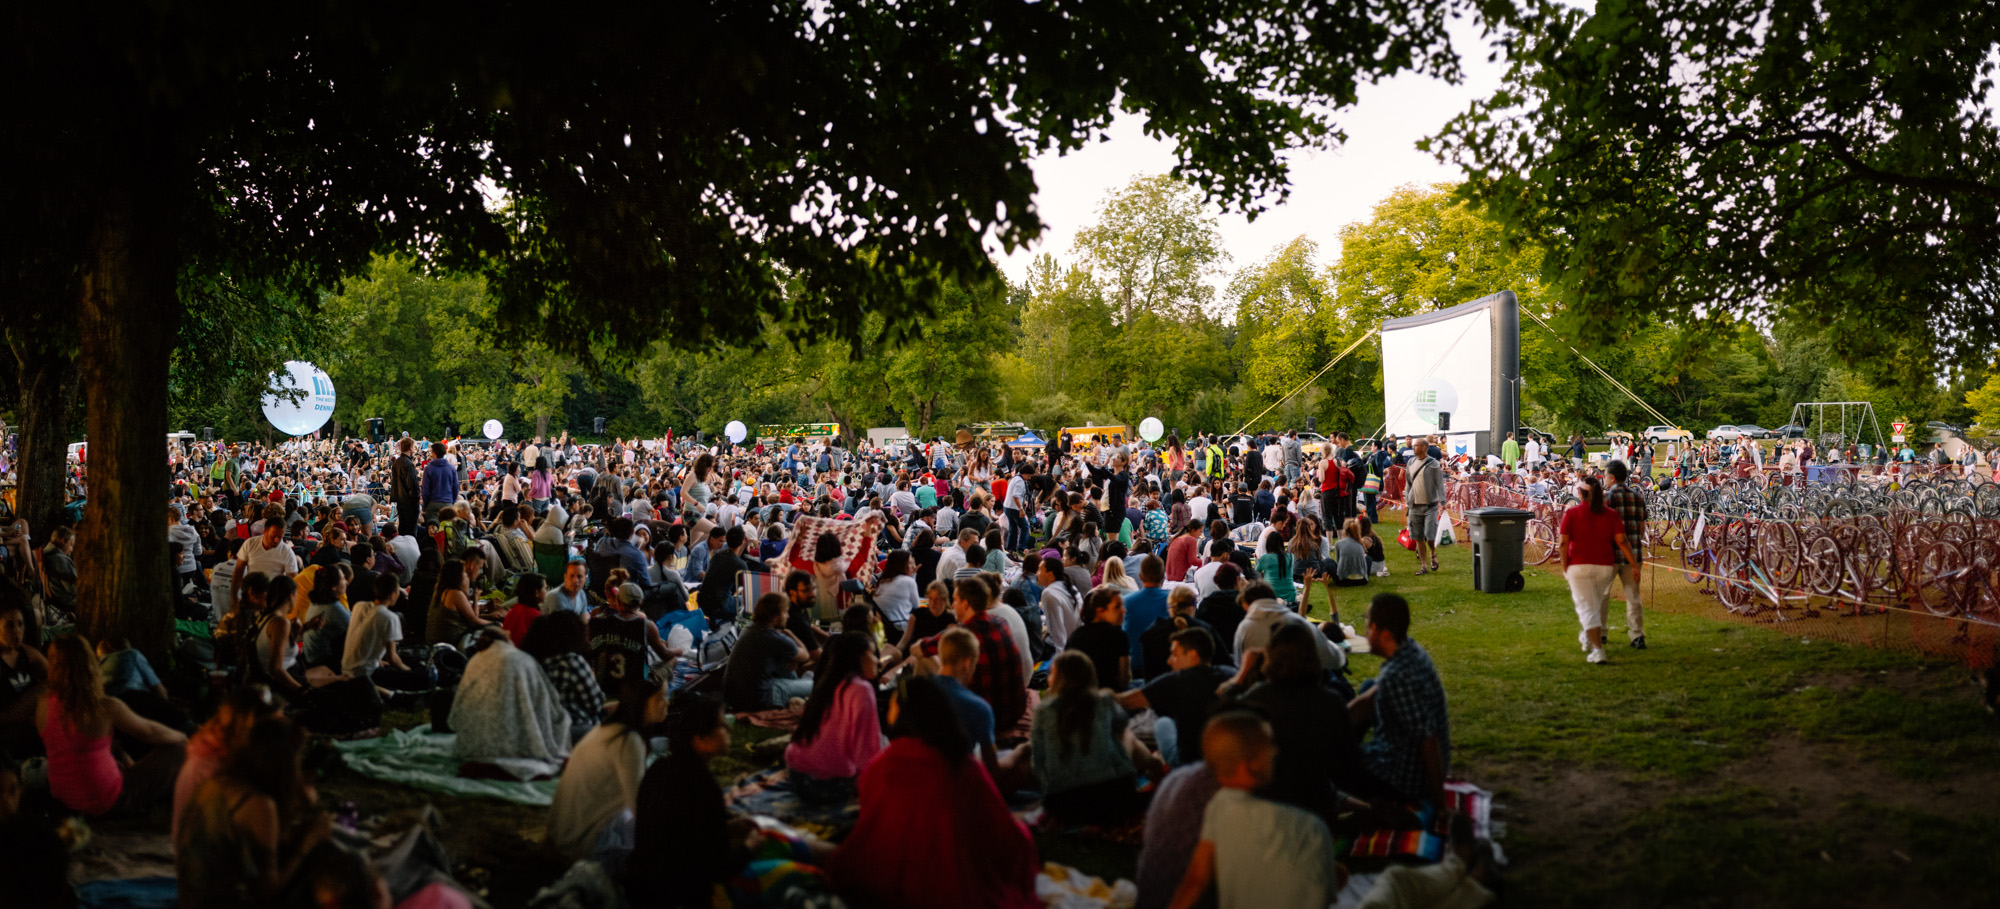 The evo summer cinema schedule has been announced west - West vancouver swimming pool schedule ...